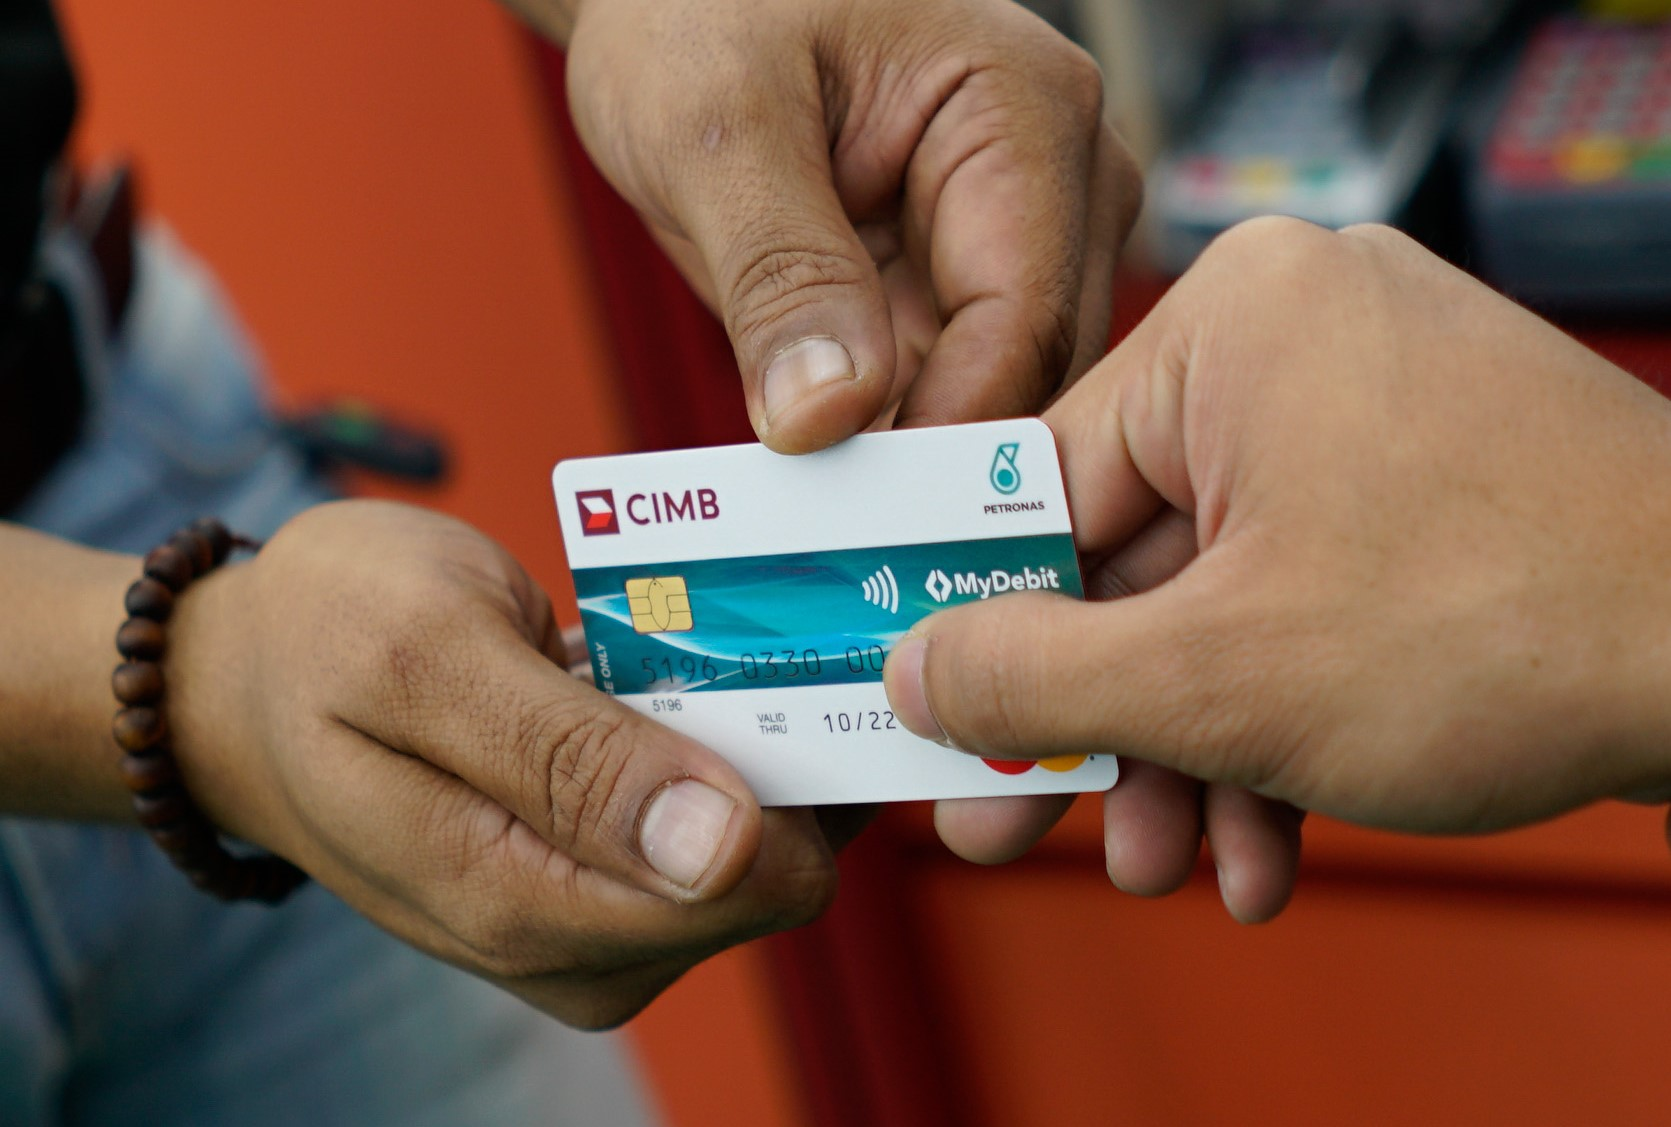 Image from CIMB